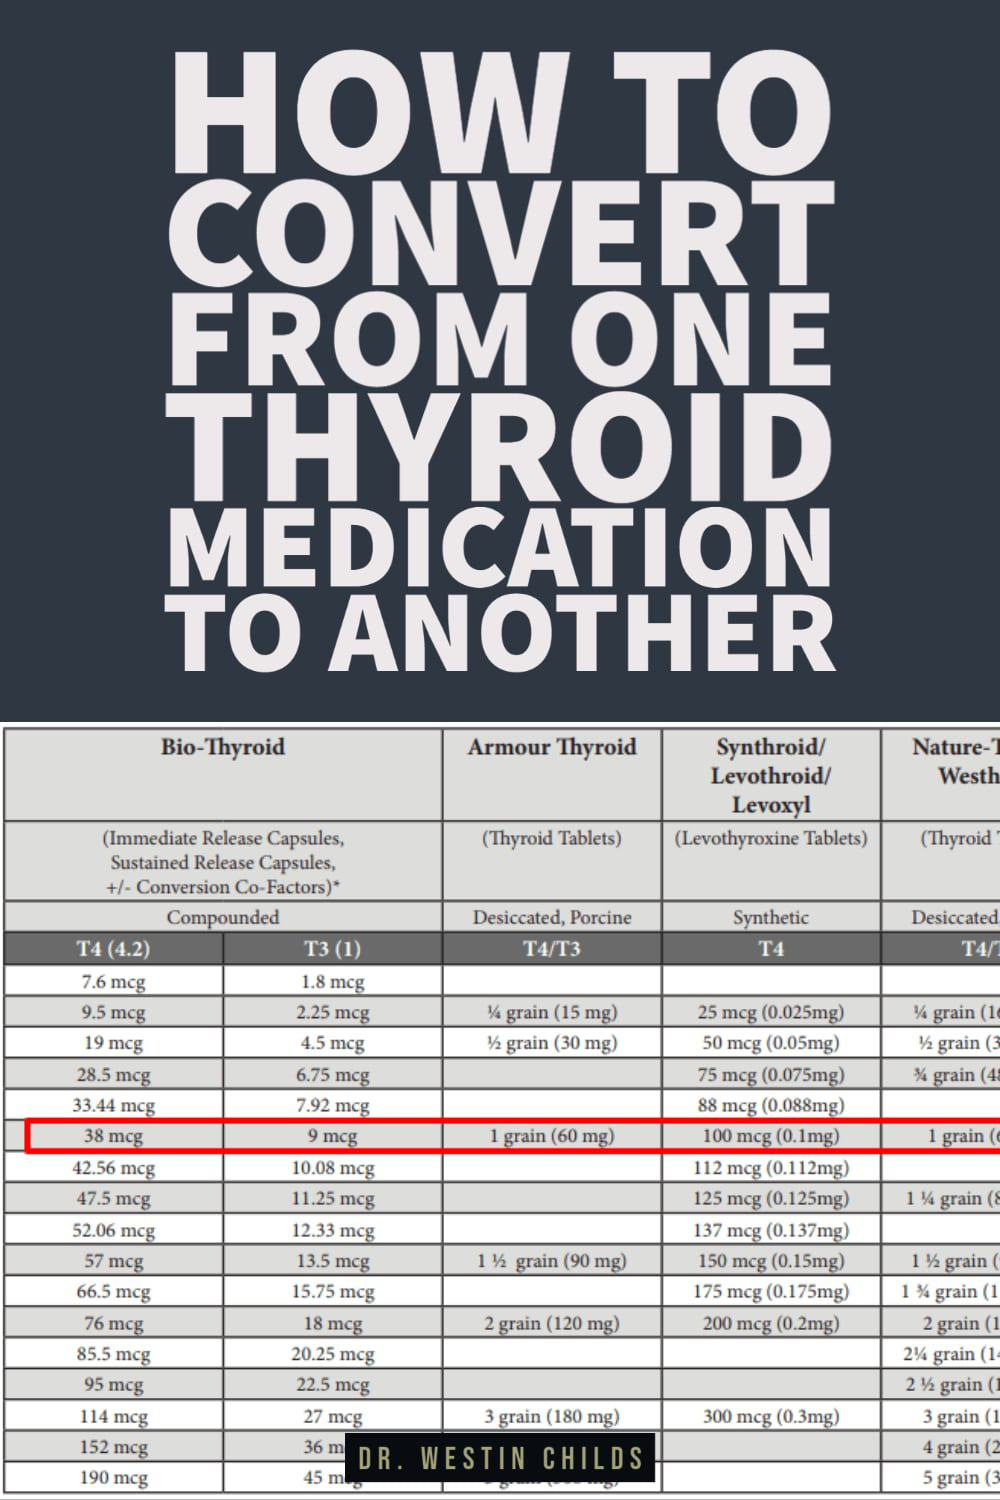 How to Convert From One Thyroid Medication to Another